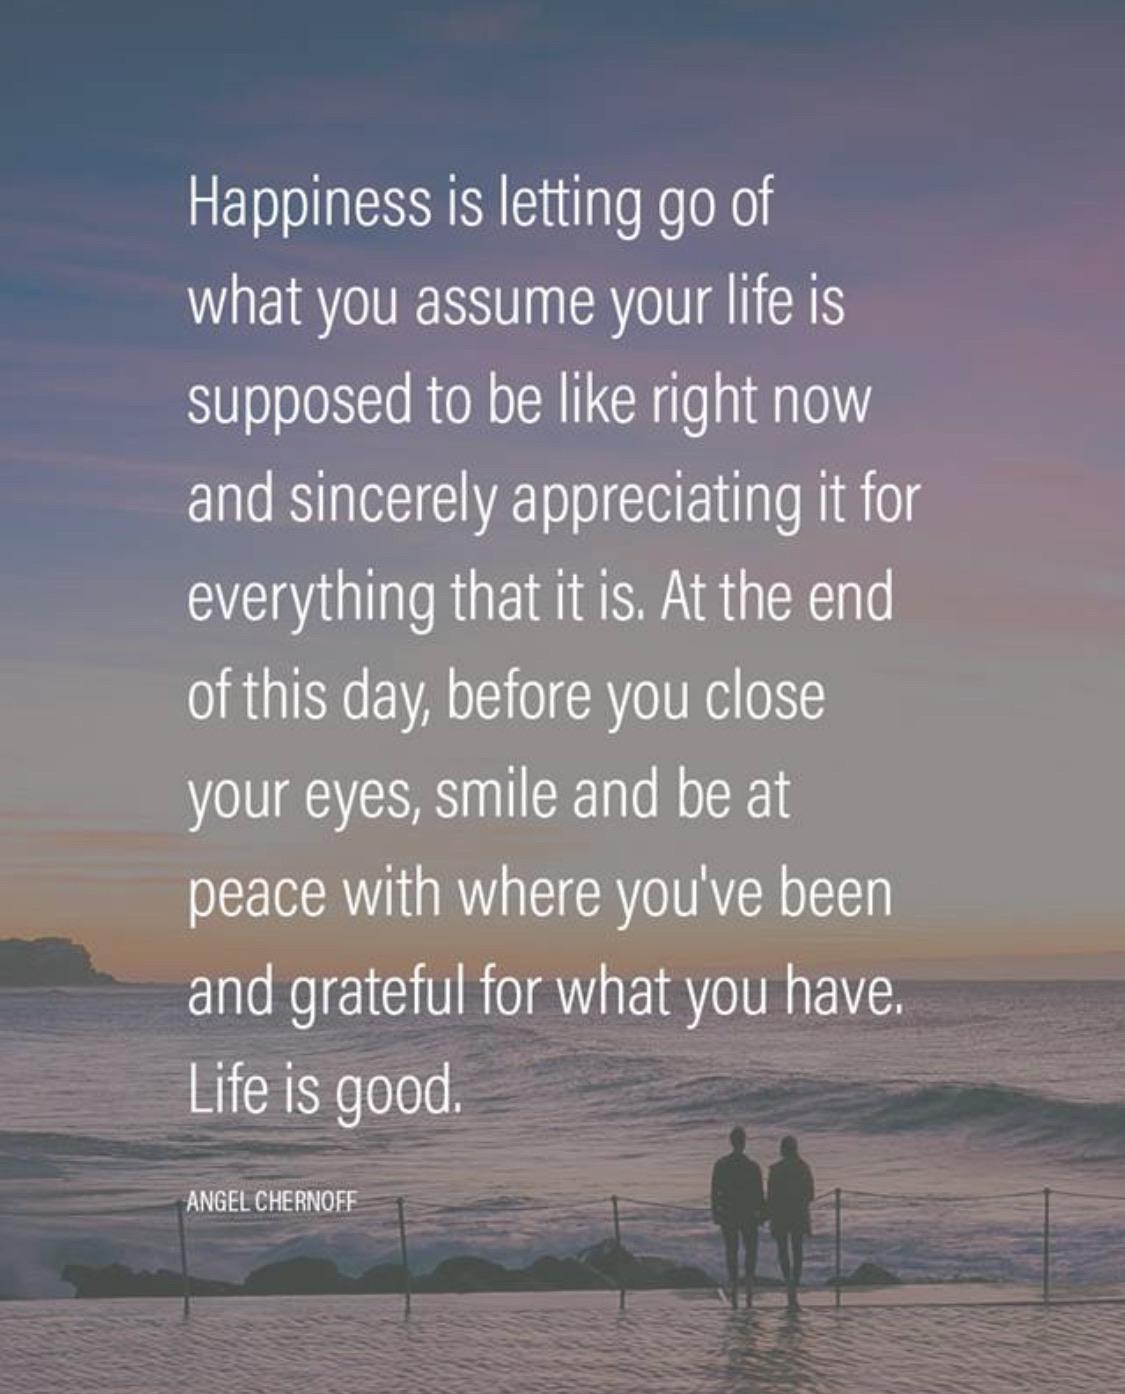 [Image] Happiness is letting go of what you assume your life is supposed to be like right now…-Angel Chernoff